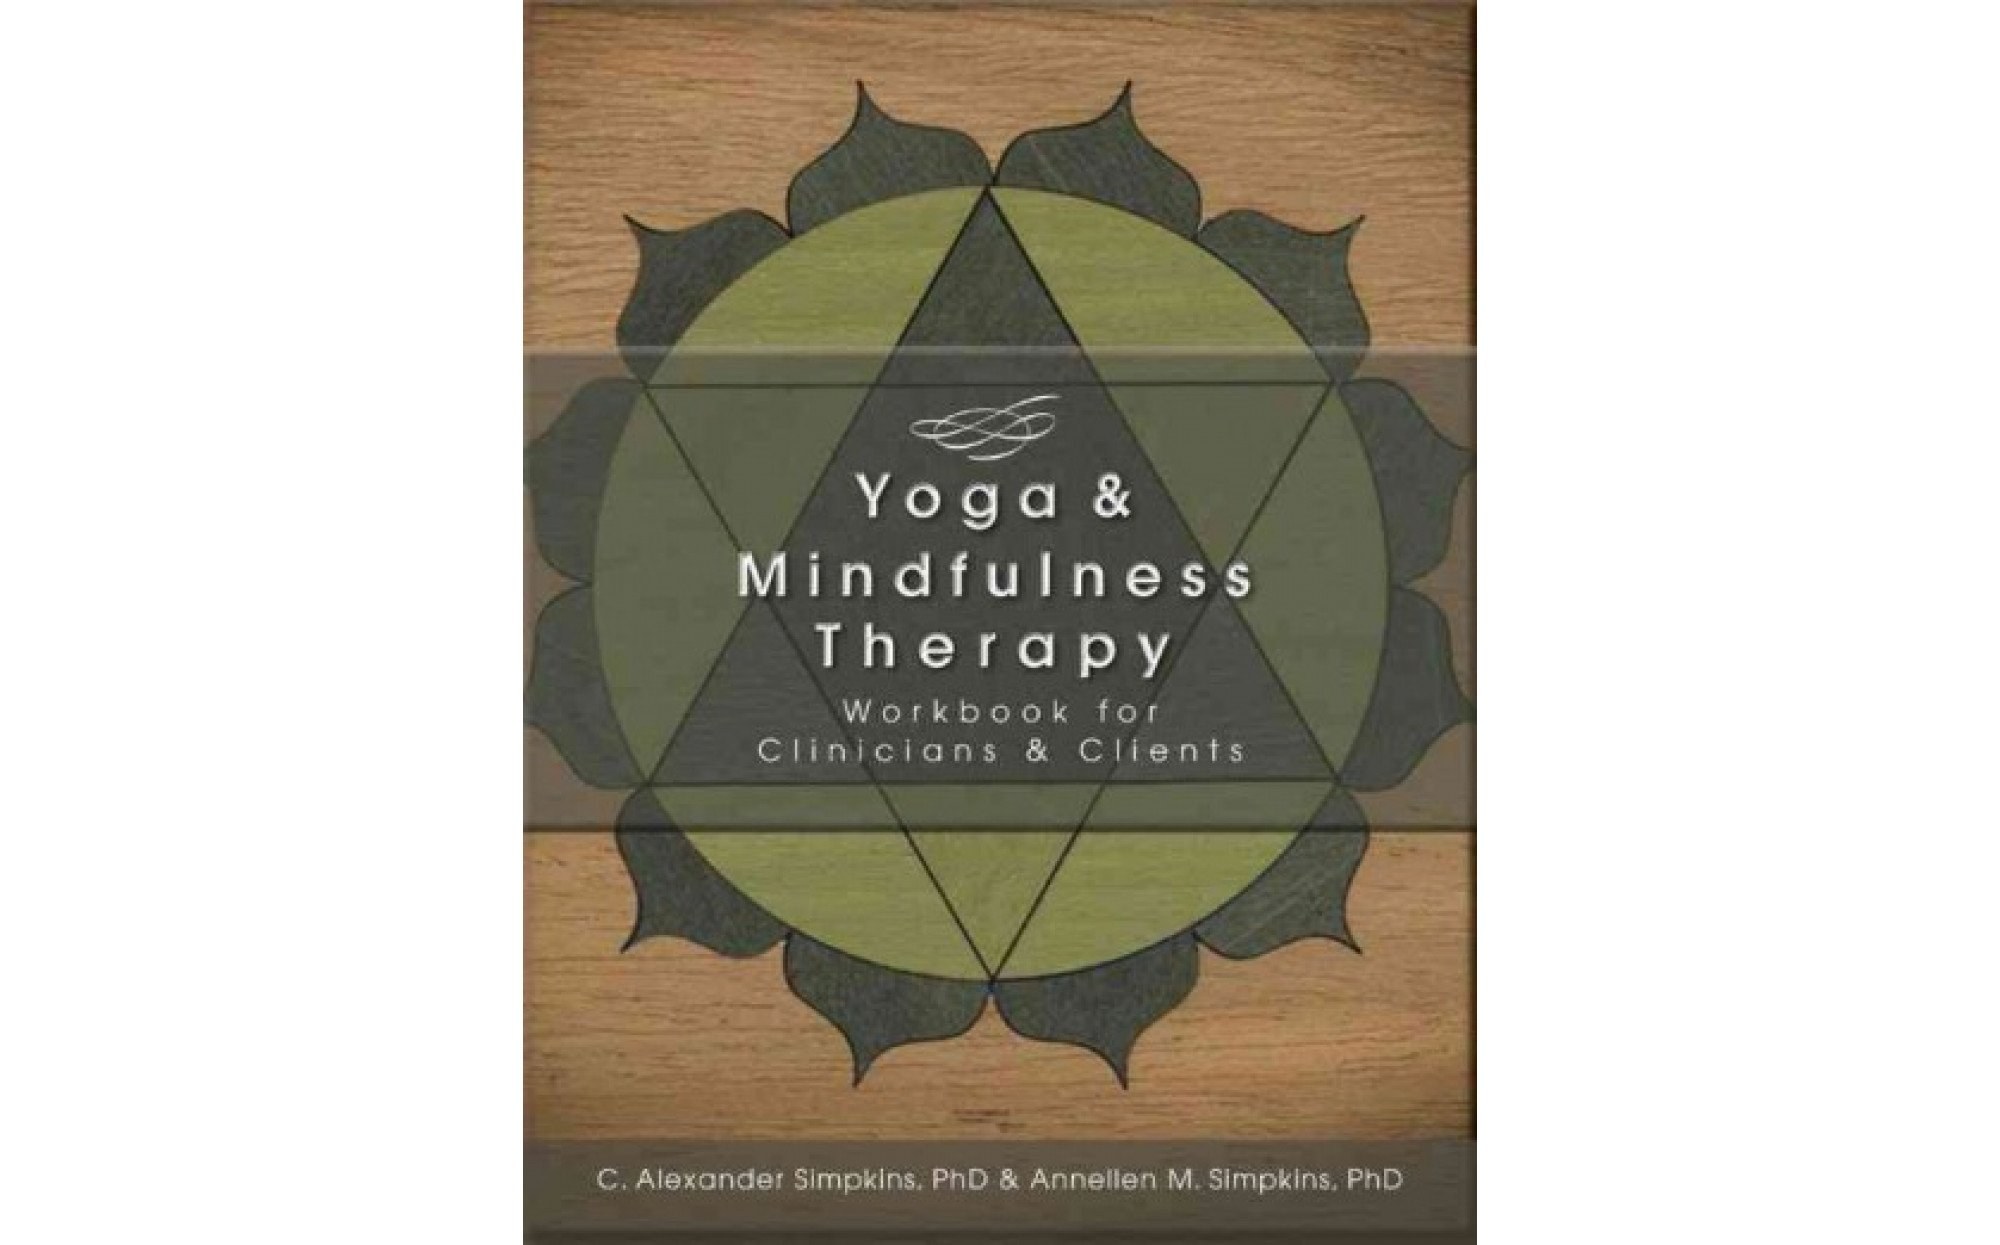 Yoga & Mindfulness Therapy: Workbook for Clinicians & Clients